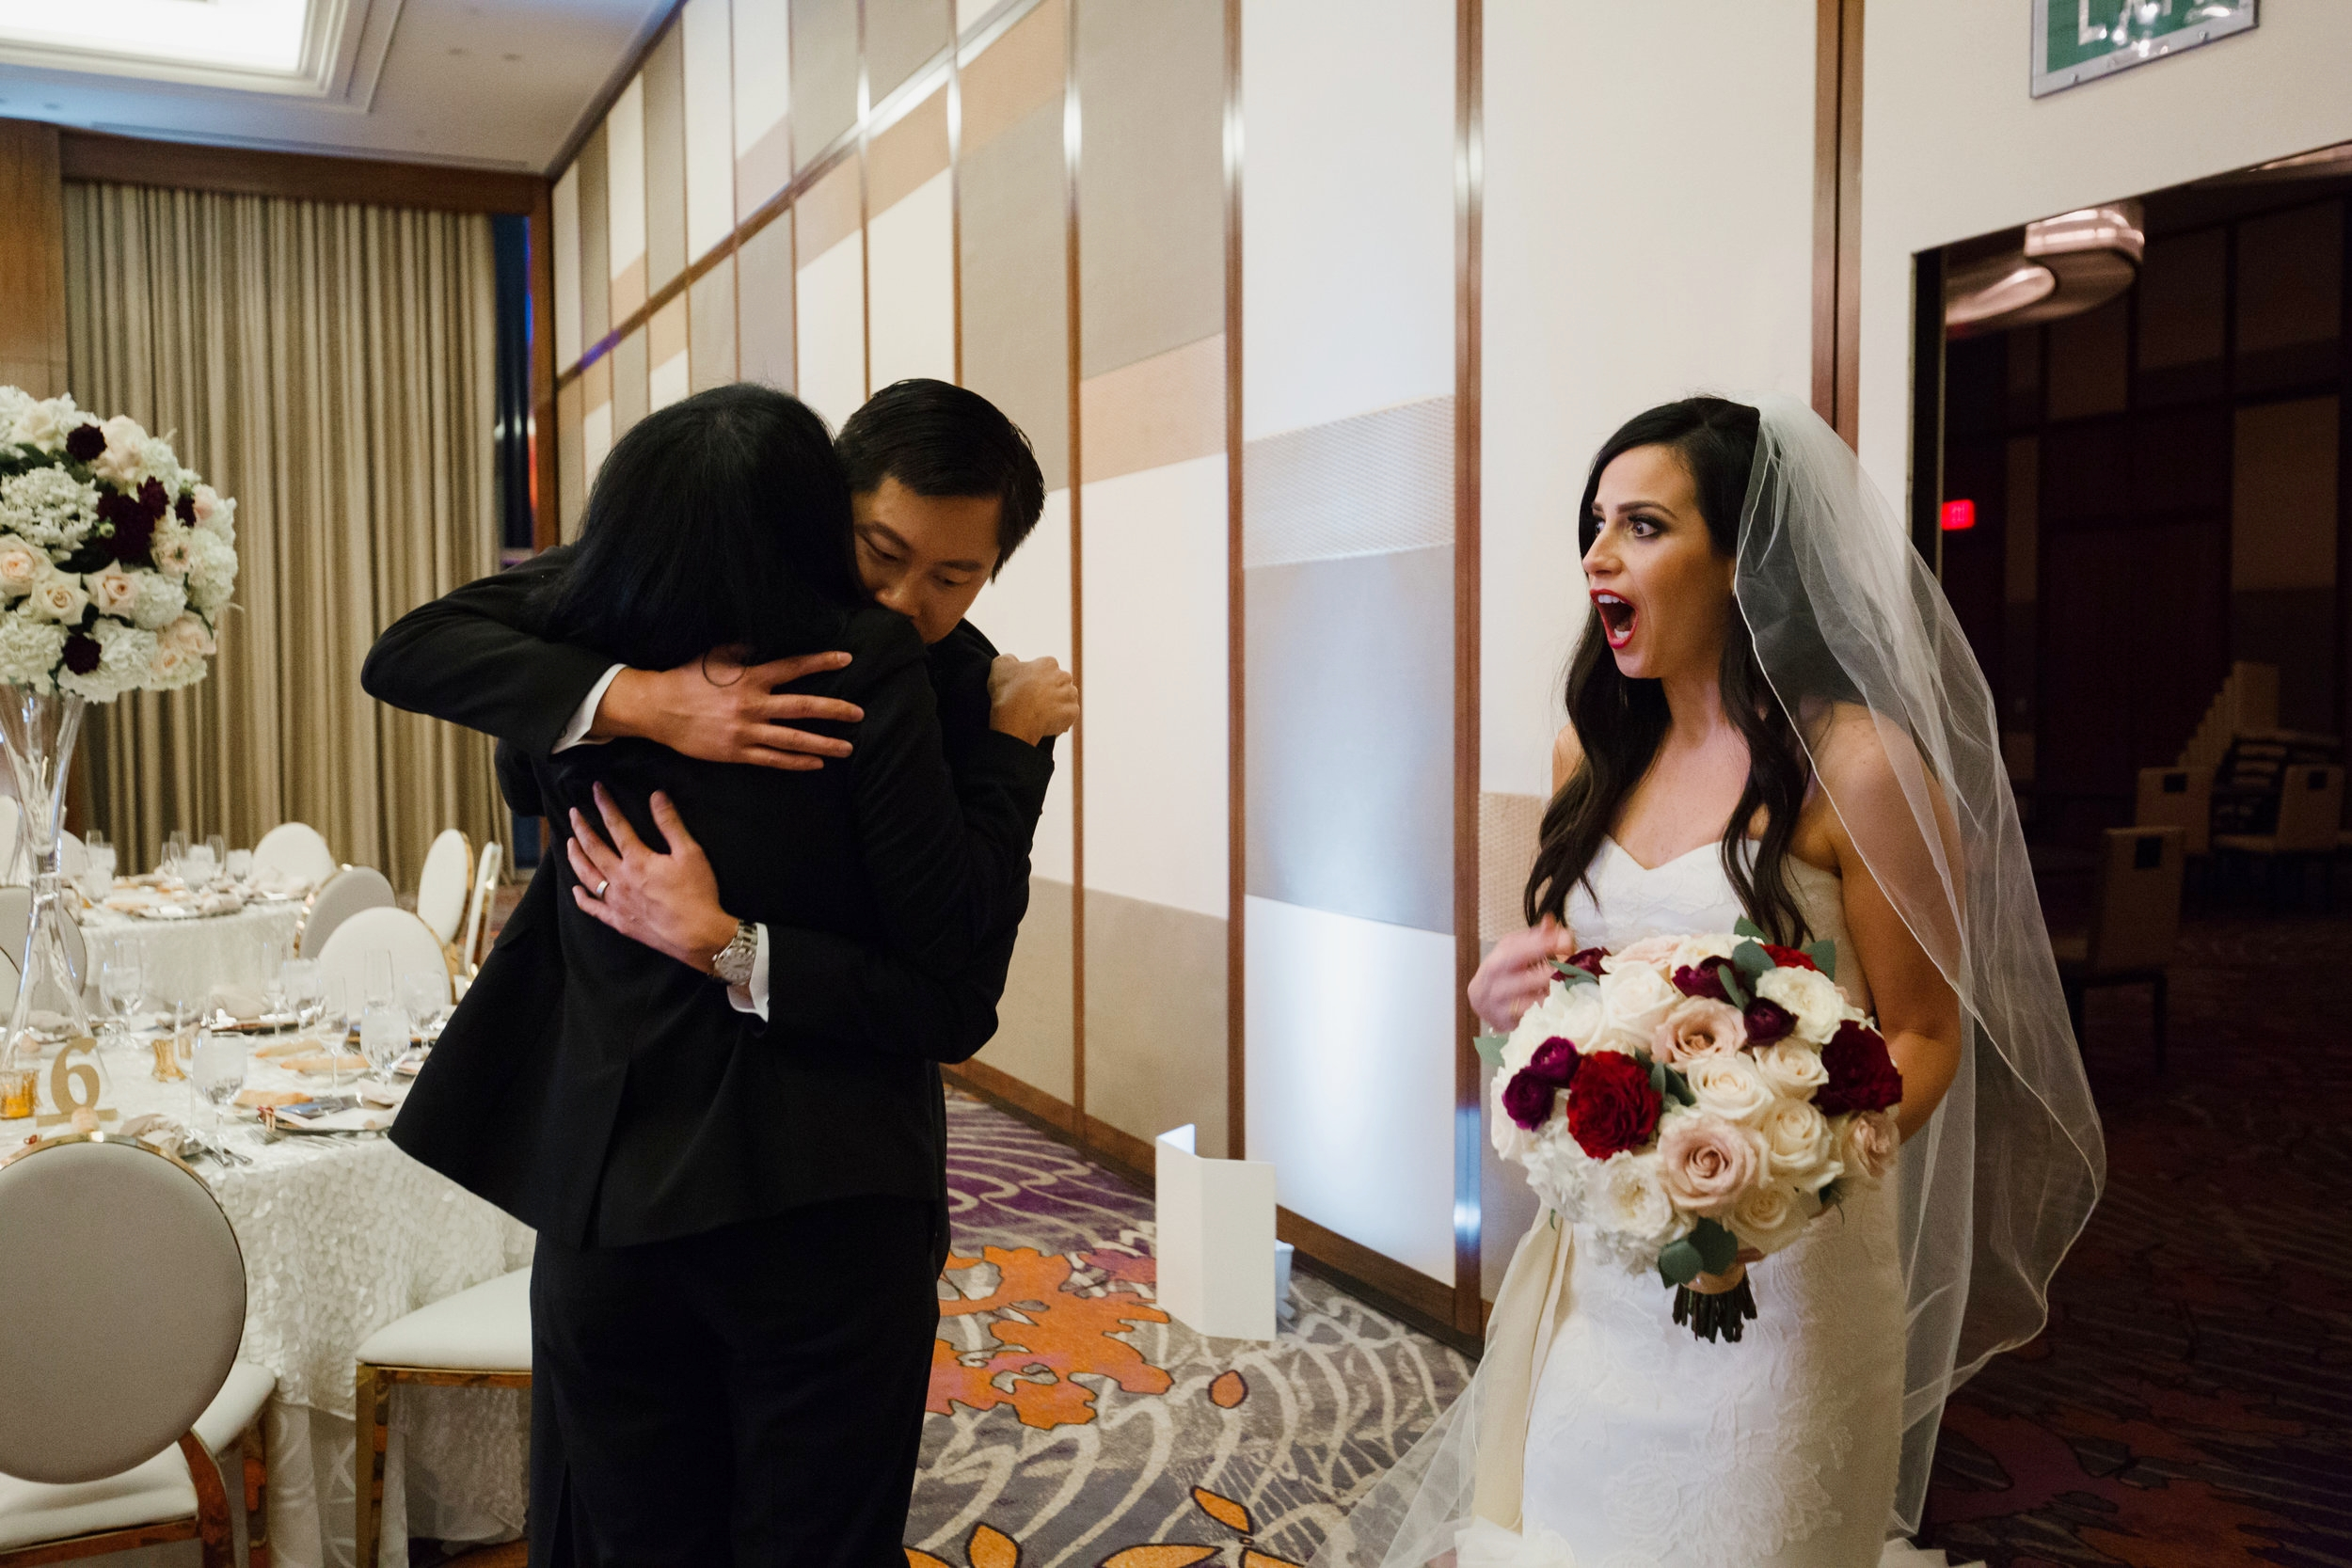 Reception reveal. Bride sees the ballroom for the first time.Luxury wedding at the Mandarin Oriental with a color scheme of white, blush, and pops of wine red produced by Las Vegas Wedding Planner Andrea Eppolito with photos by Stephen Salazar Photography.